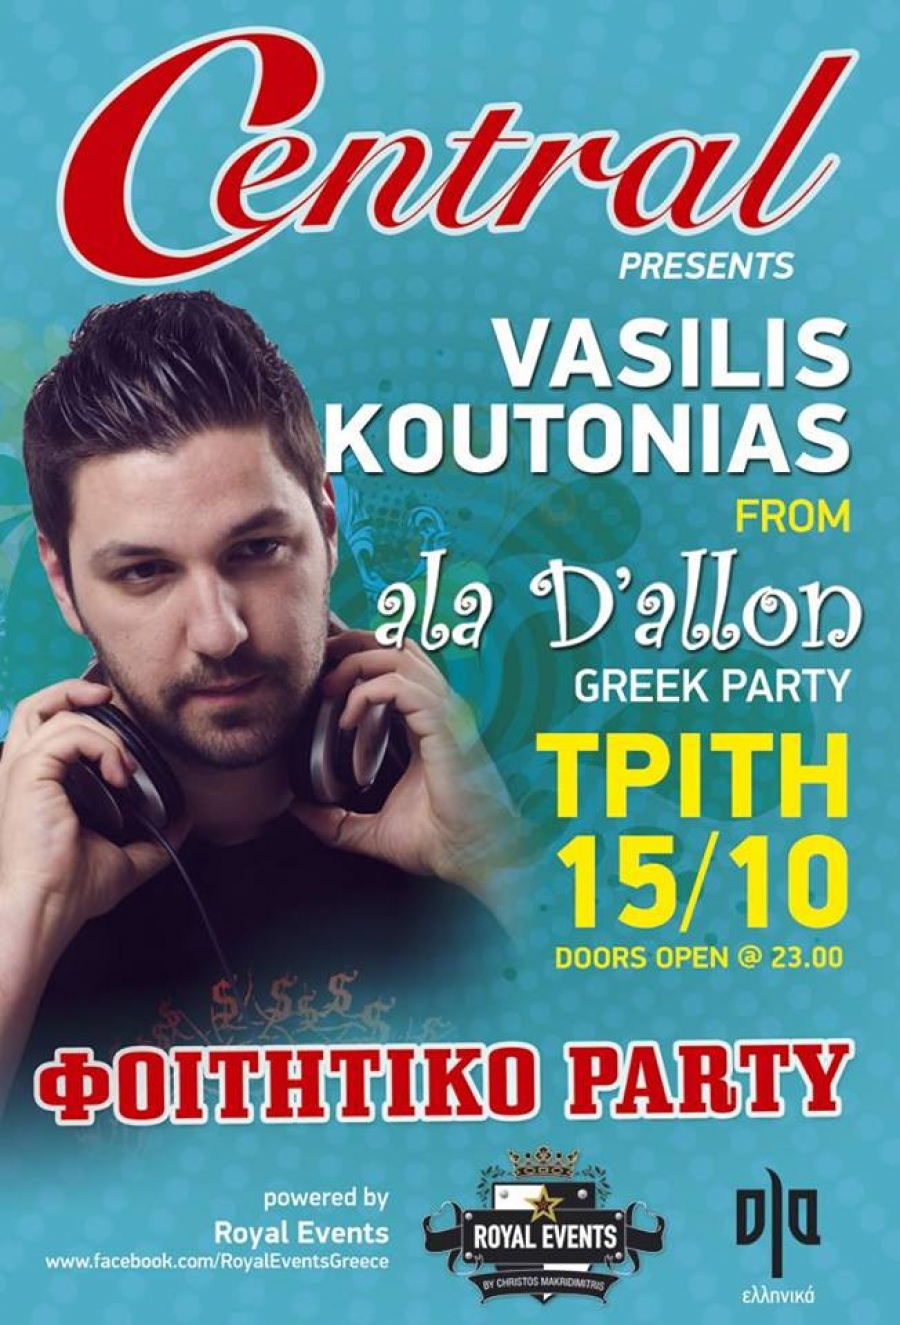 ala D'allon Greek Party - Central Τρίπολη